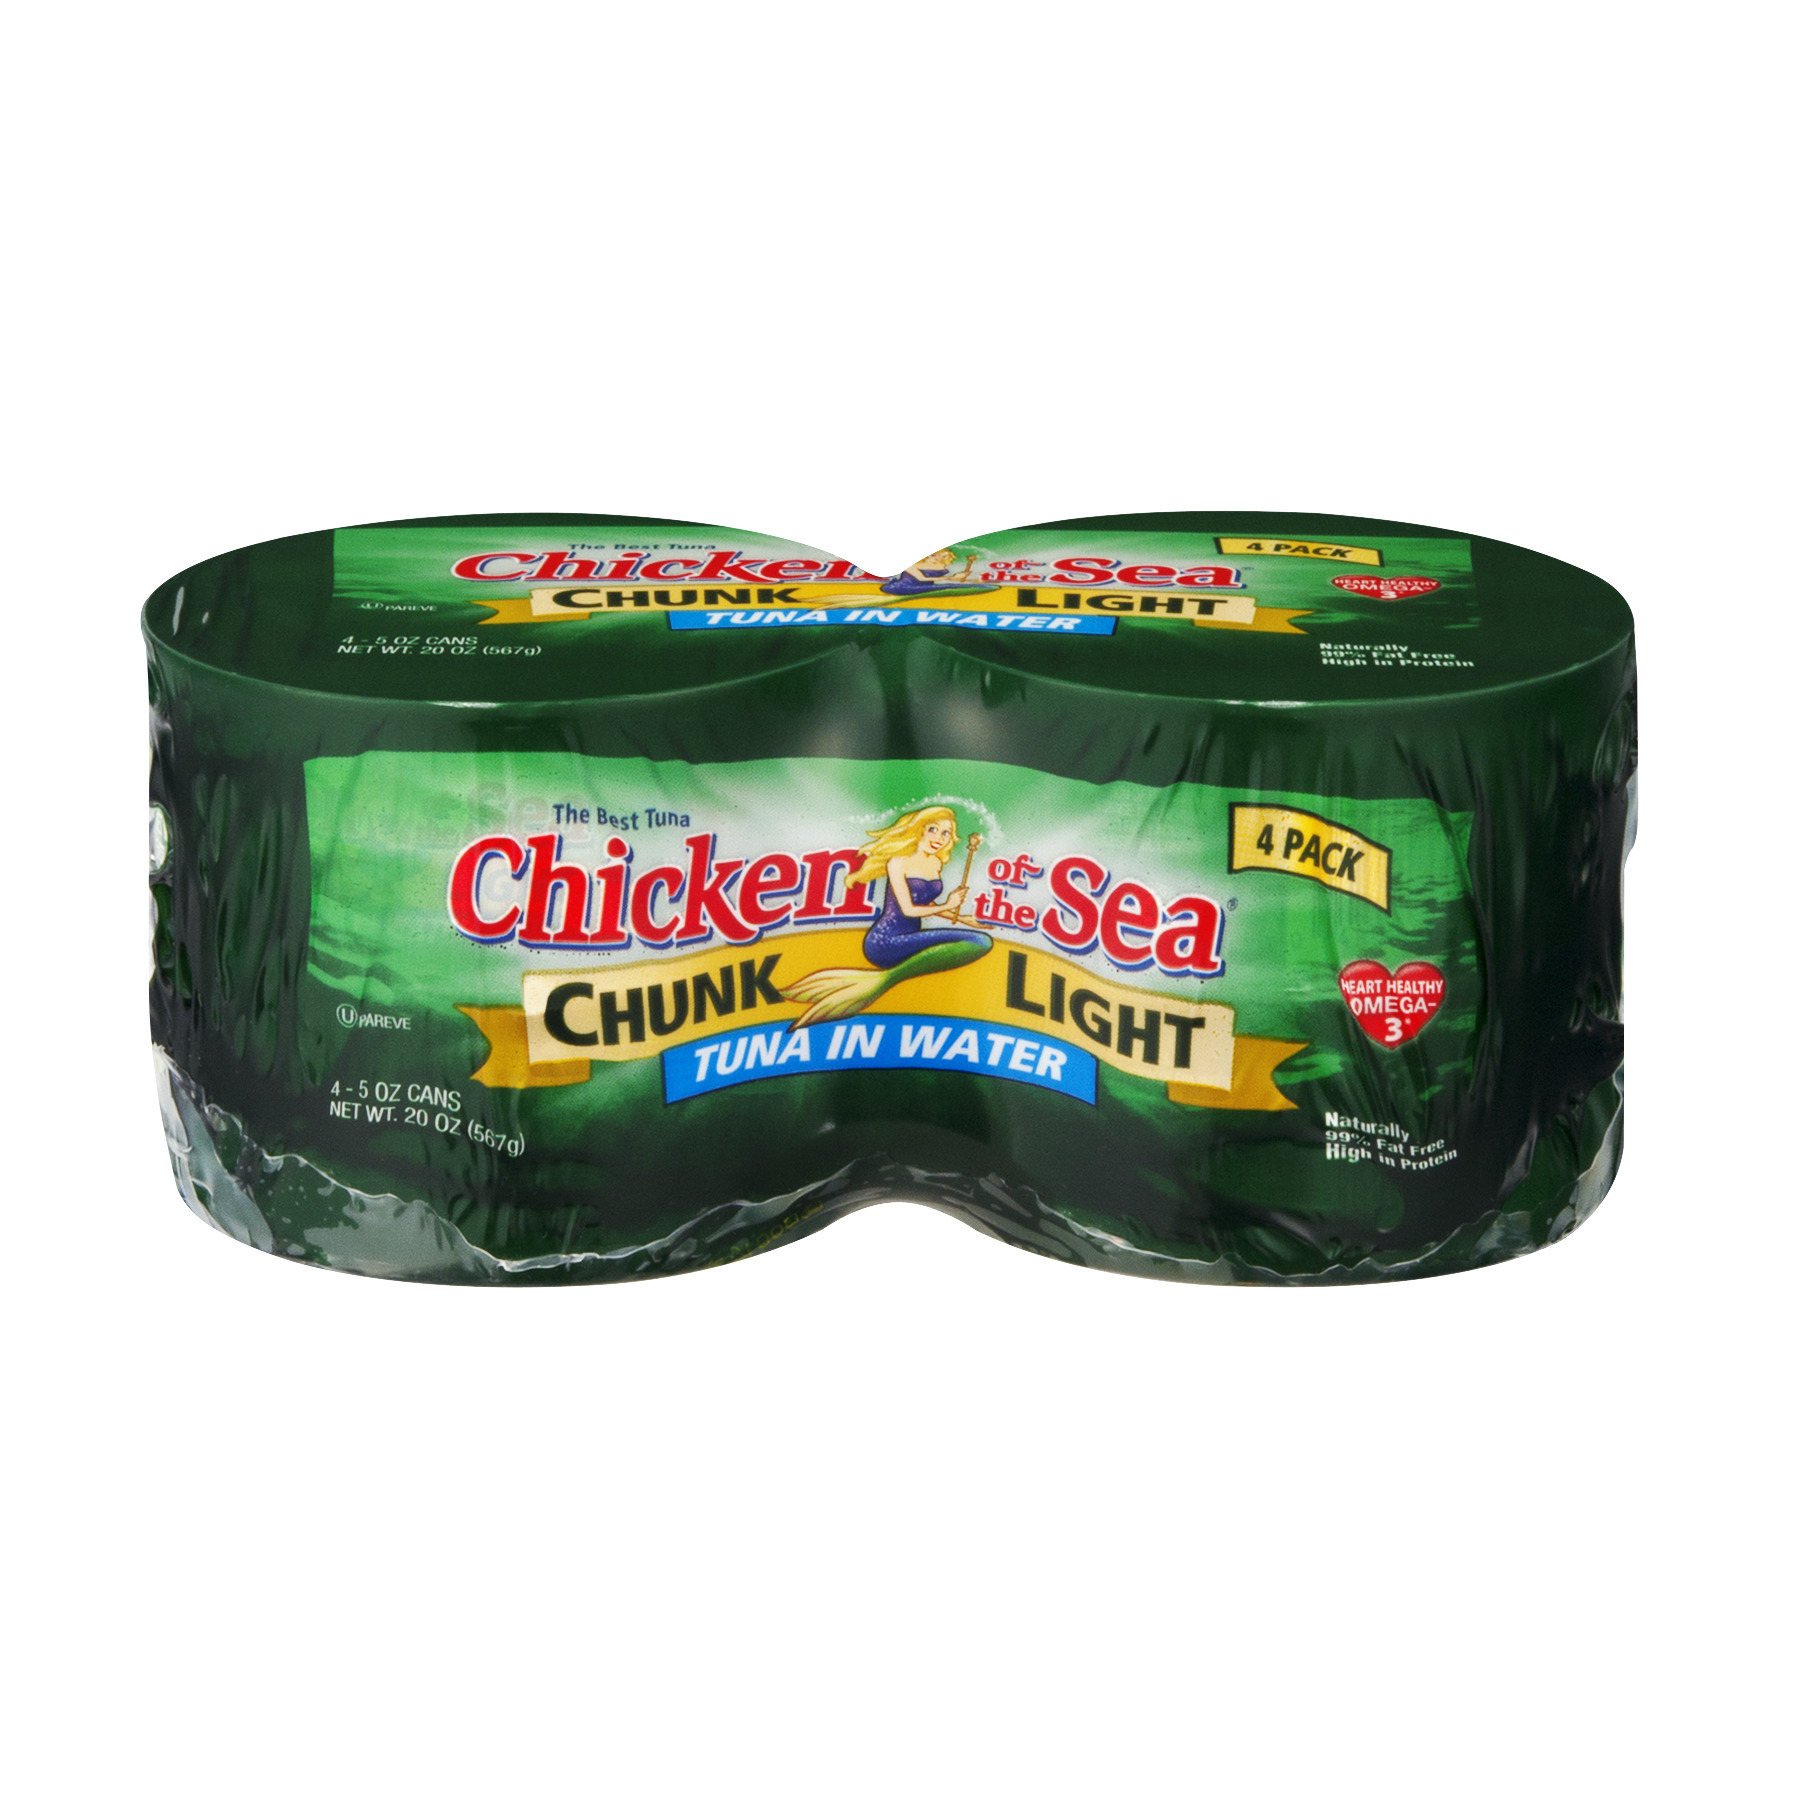 Chicken of the Sea® Chunk Light Tuna in Water 5 oz 4 ct Wrapper